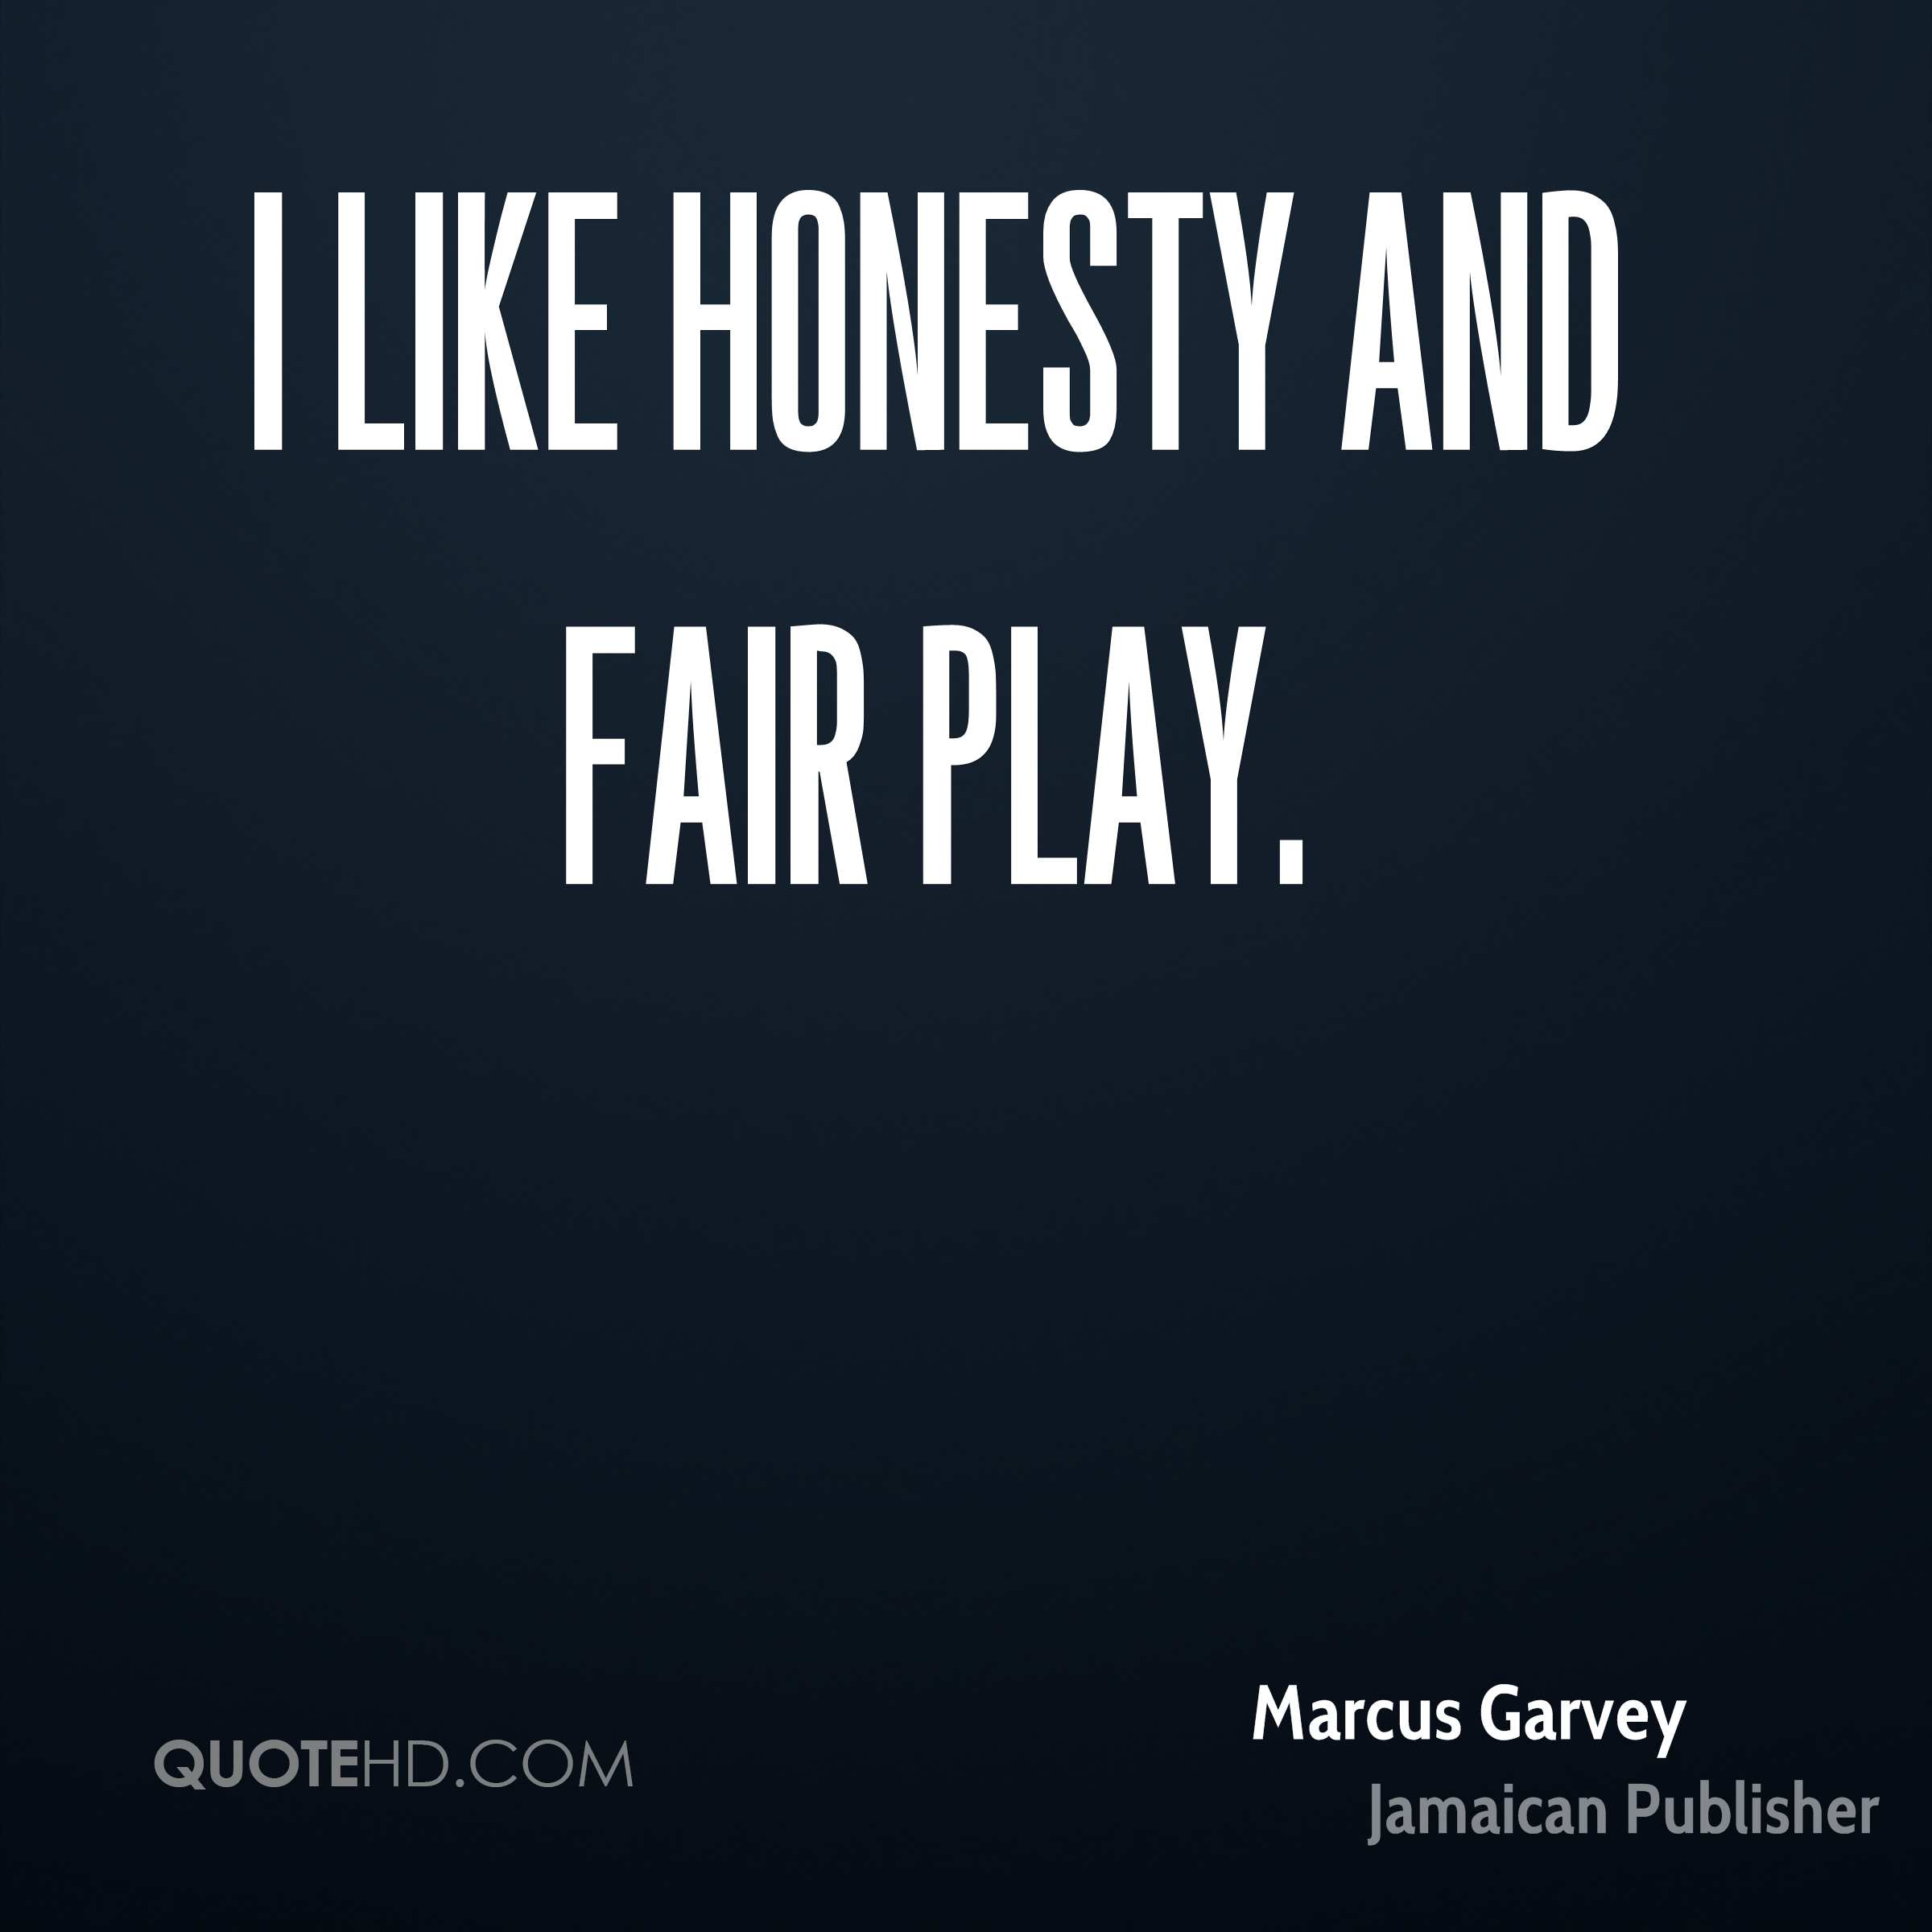 Jamaican Quotes Marcus Garvey Quotes  Quotehd